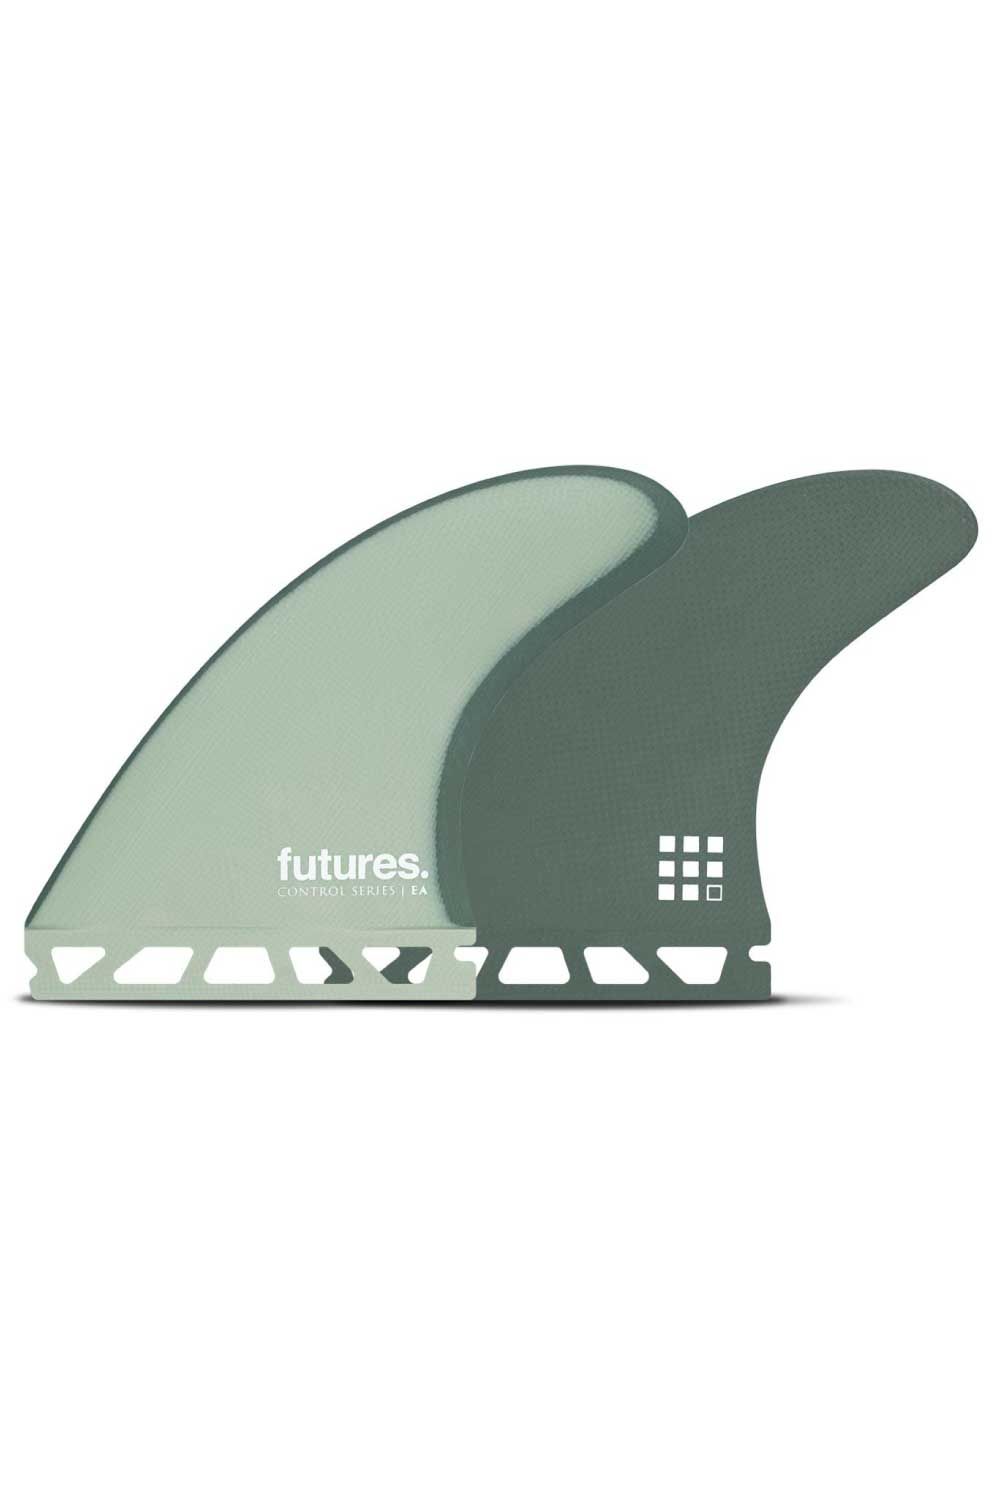 Futures Finds EA Control Series Fibreglass Thruster Set